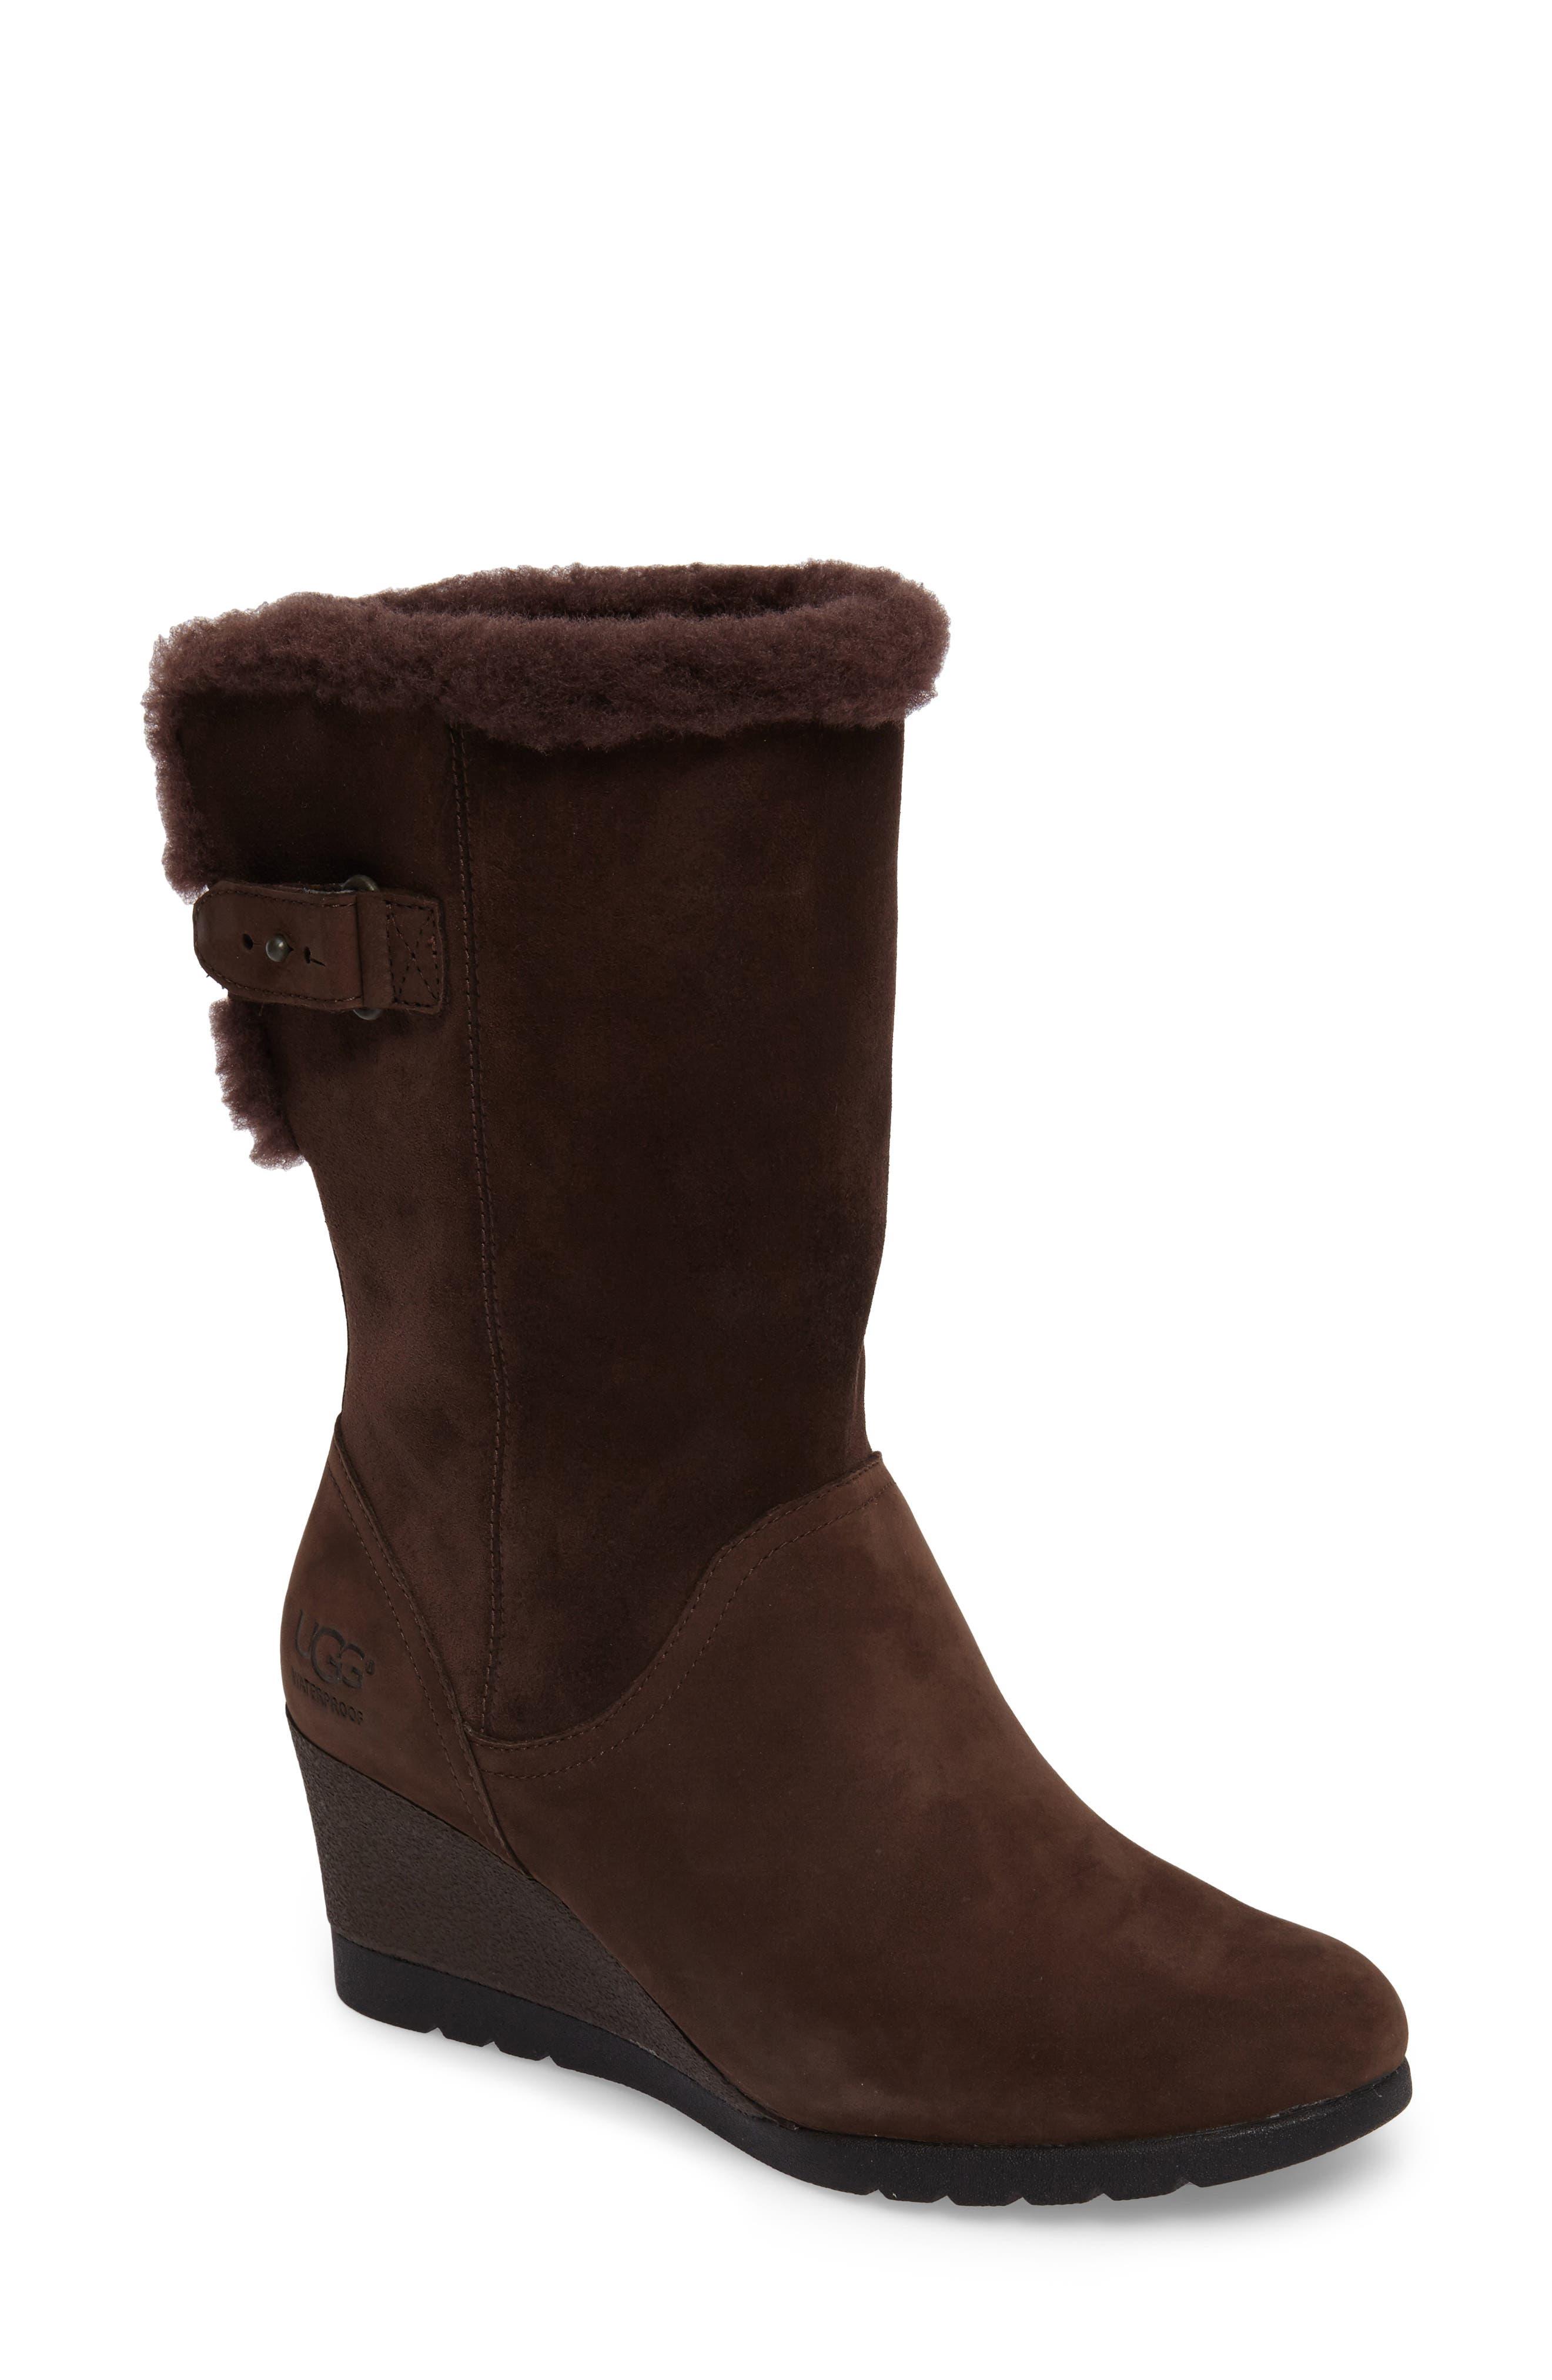 Edelina Waterproof Wedge Boot,                         Main,                         color, Grizzly Leather